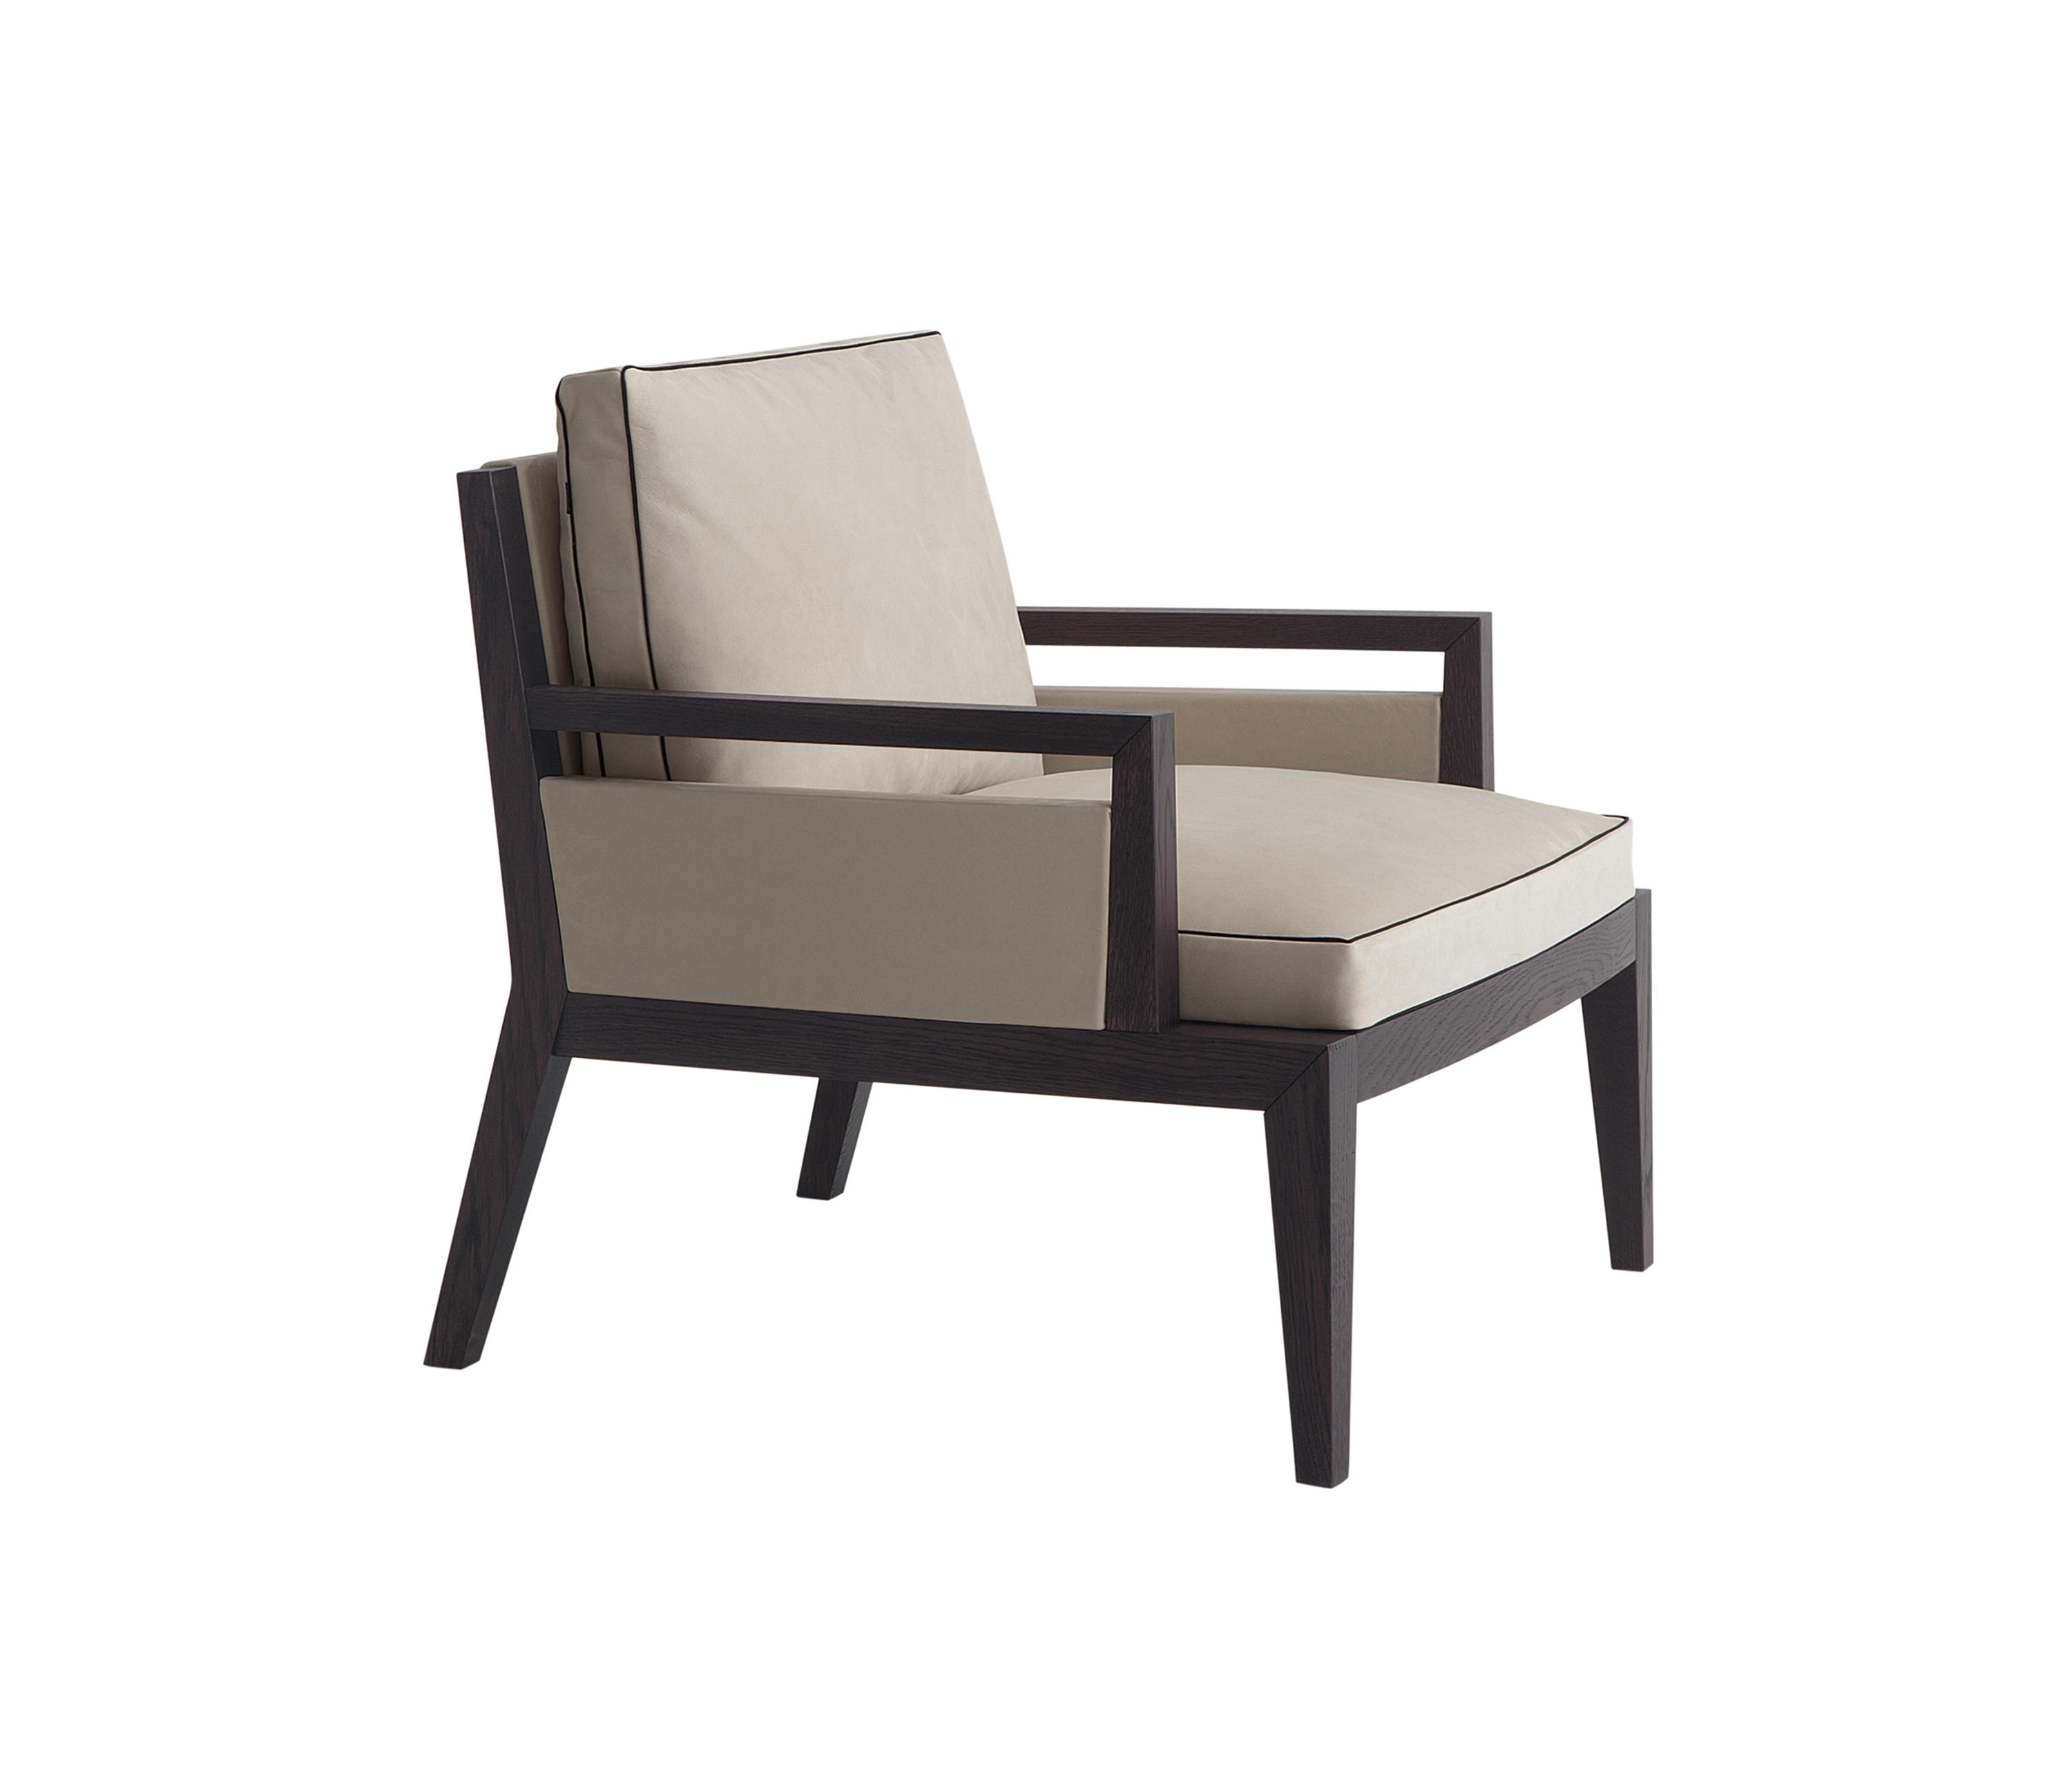 Soori Highline Armchair Lounge Chairs From Poliform